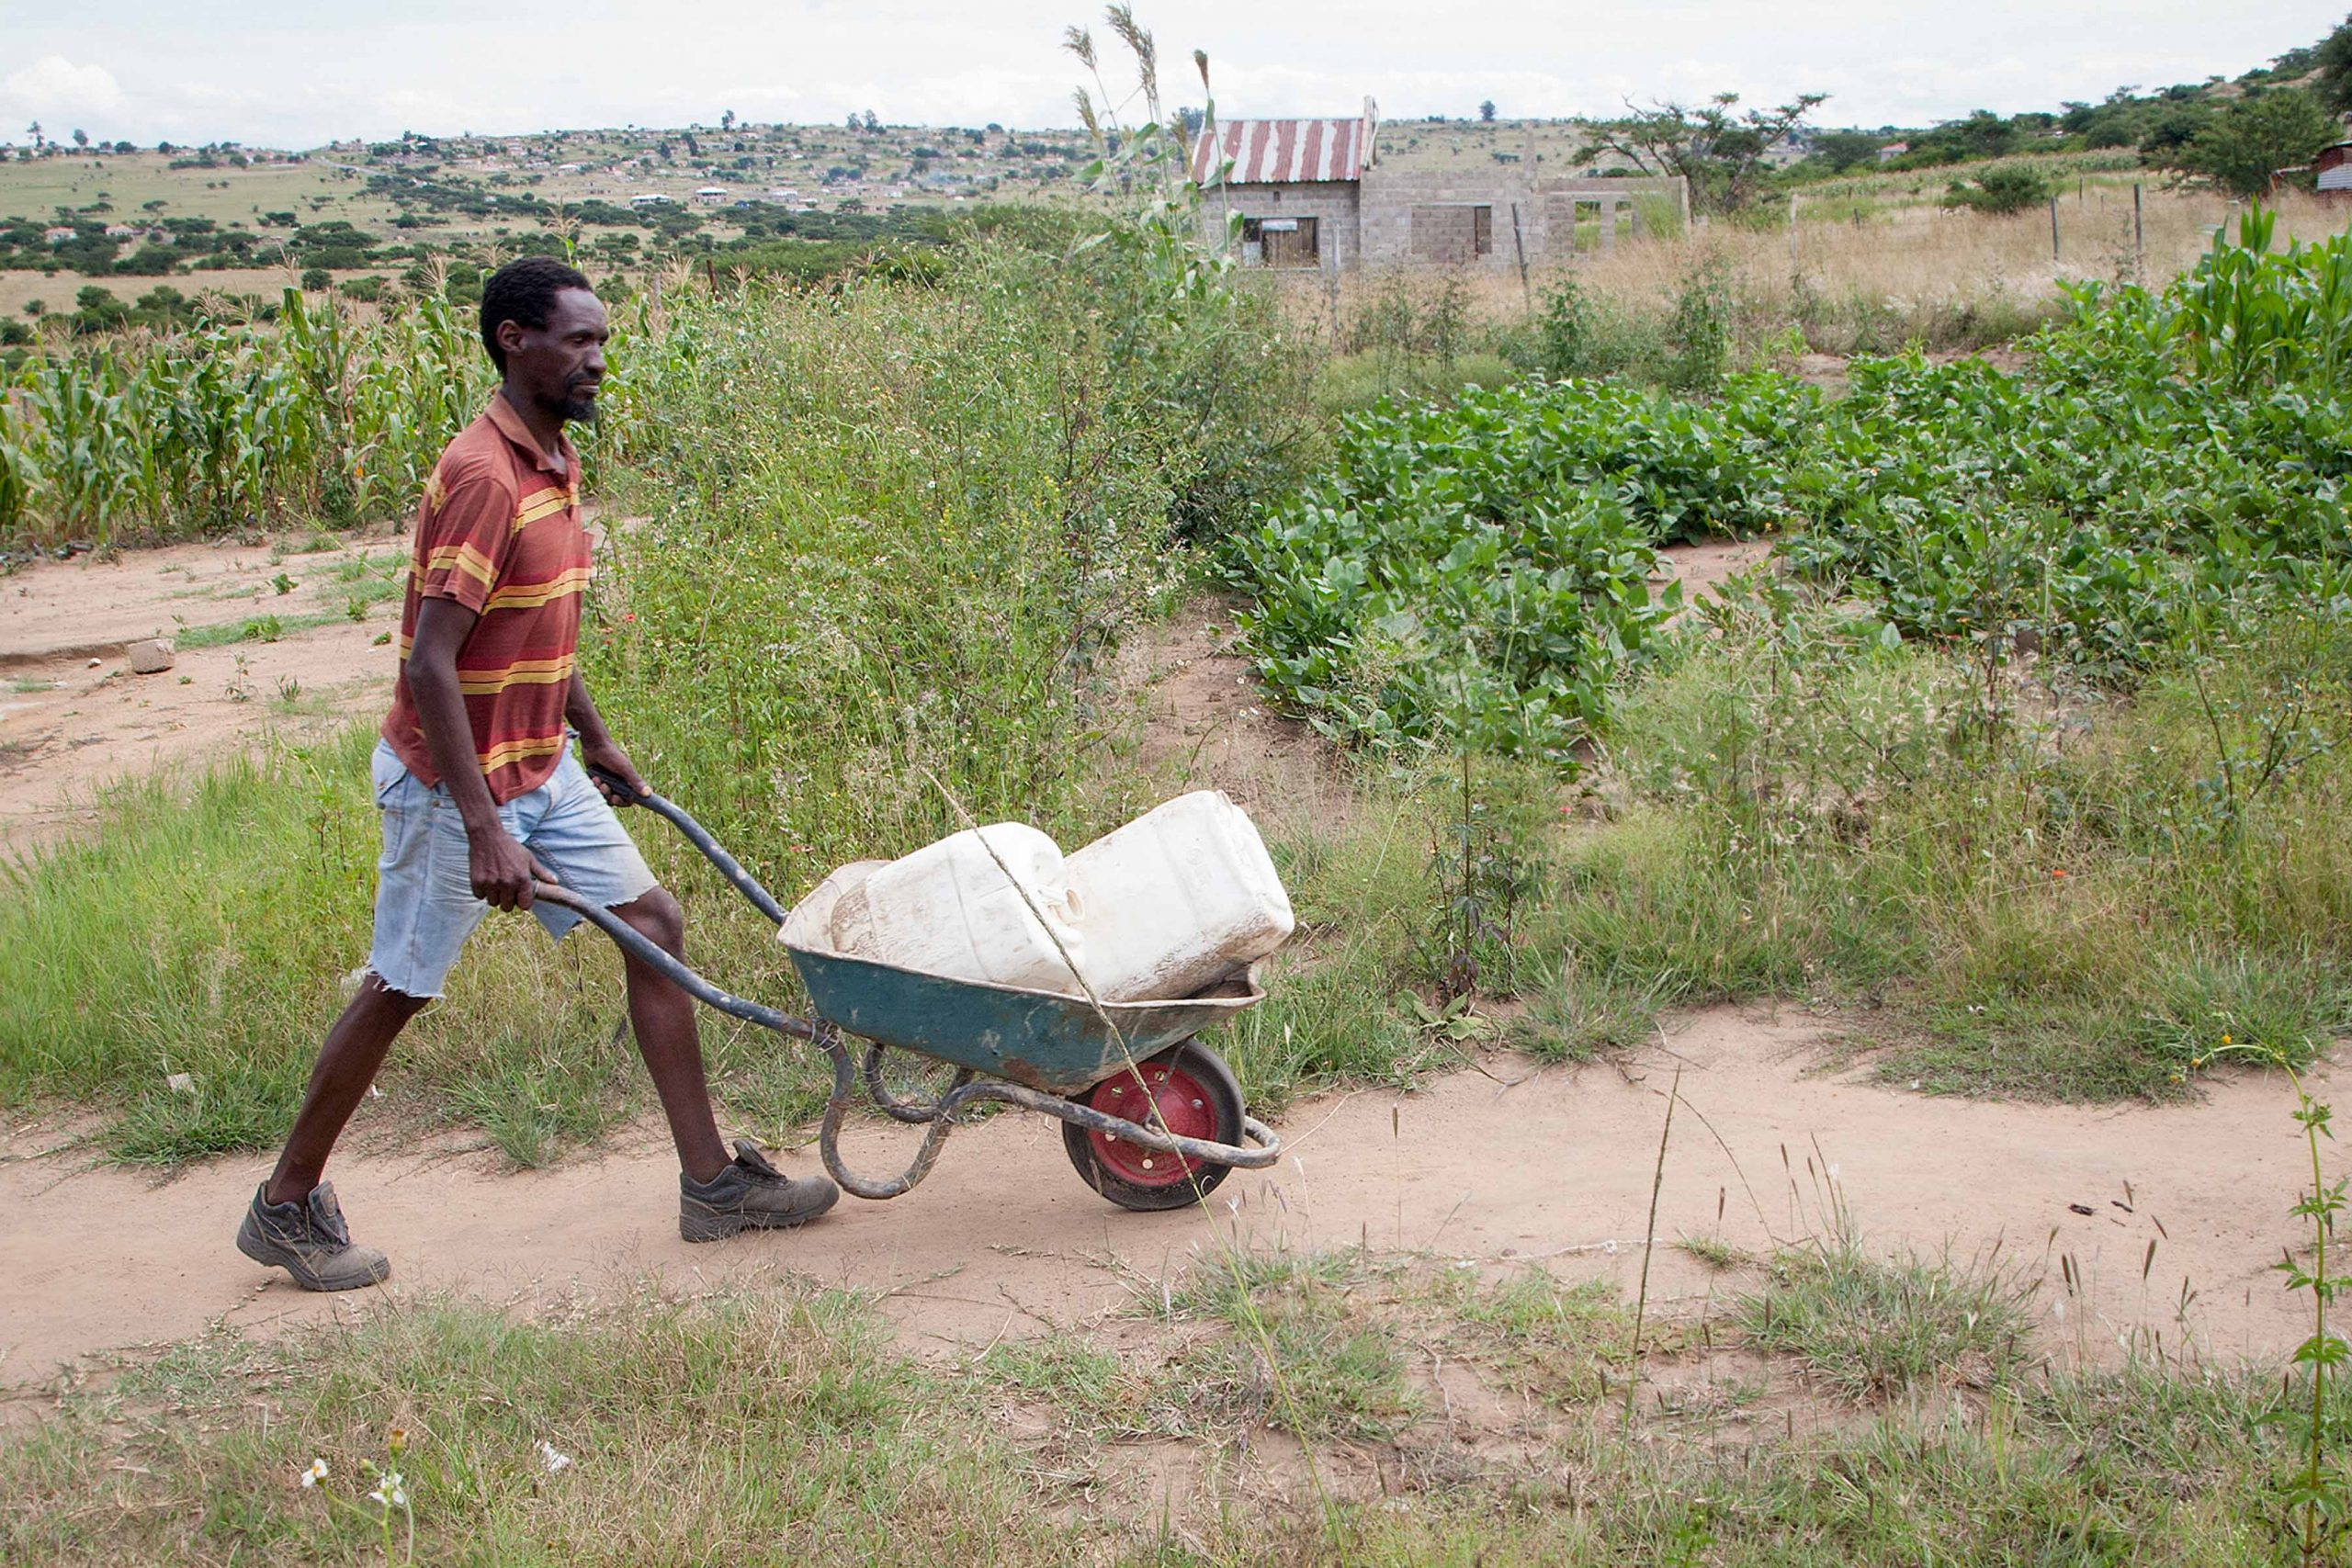 13 March 2020: When the water truck fails to arrive near his home, Mzwakhe Ngema walks to a communal tap to collect water for his children.